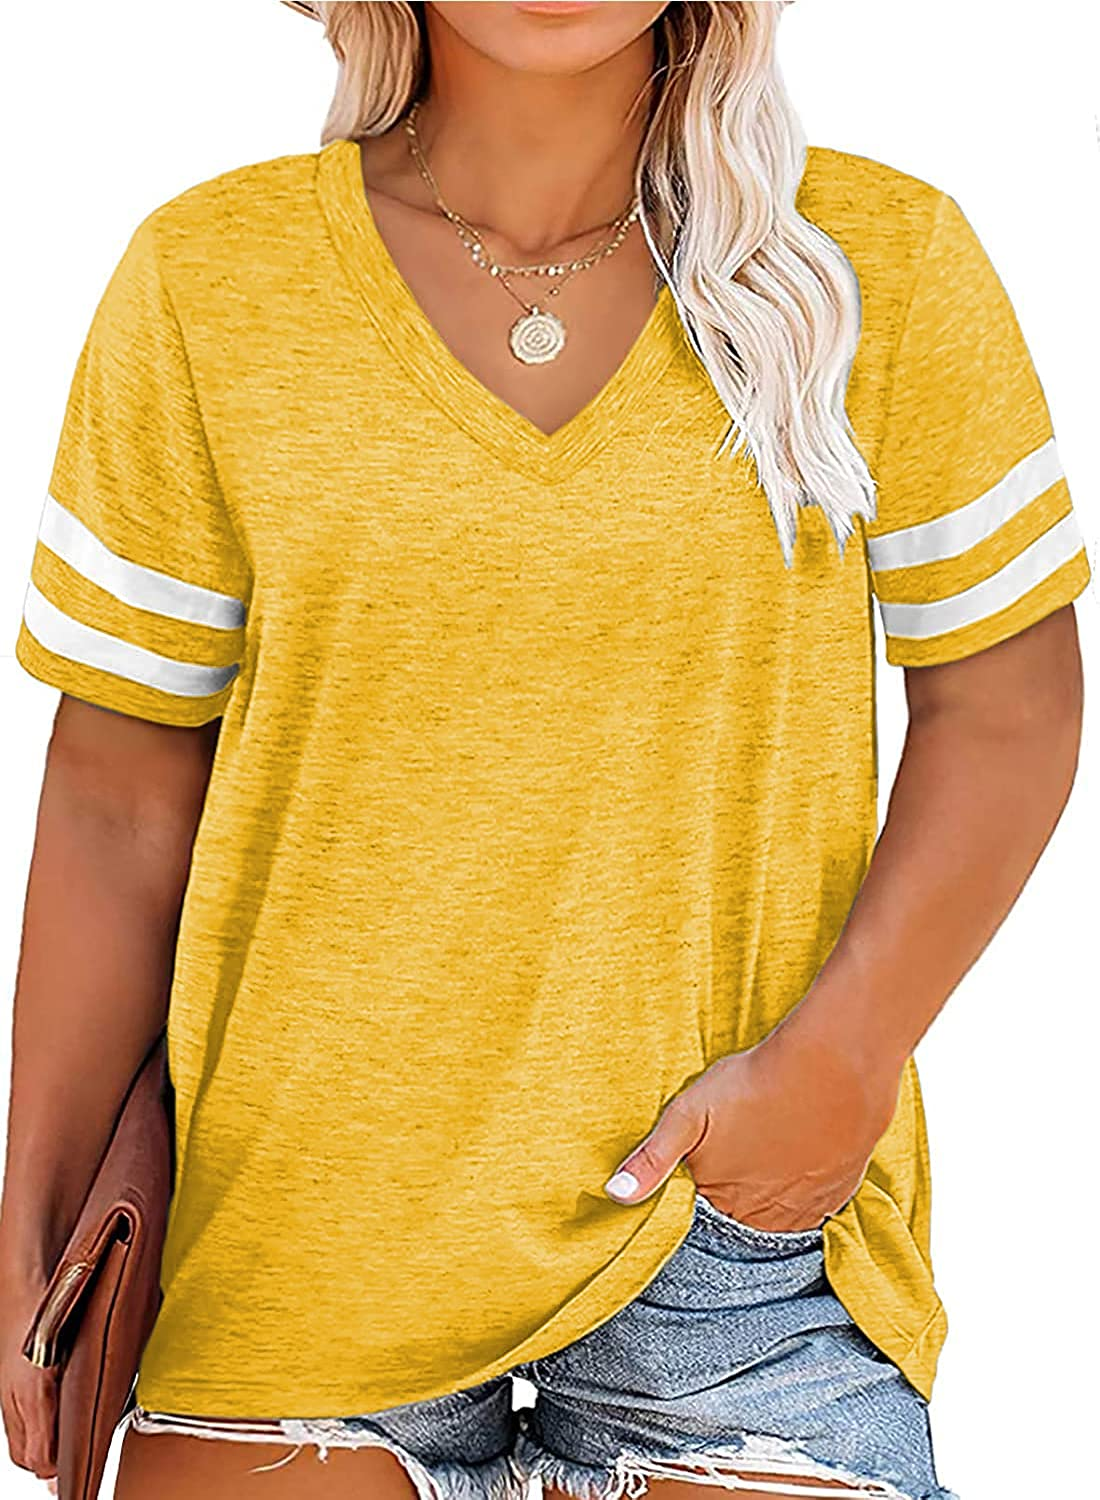 Plus Size Tops Tunics V Neck Short Sleeve Loose Tee Shirts for Women